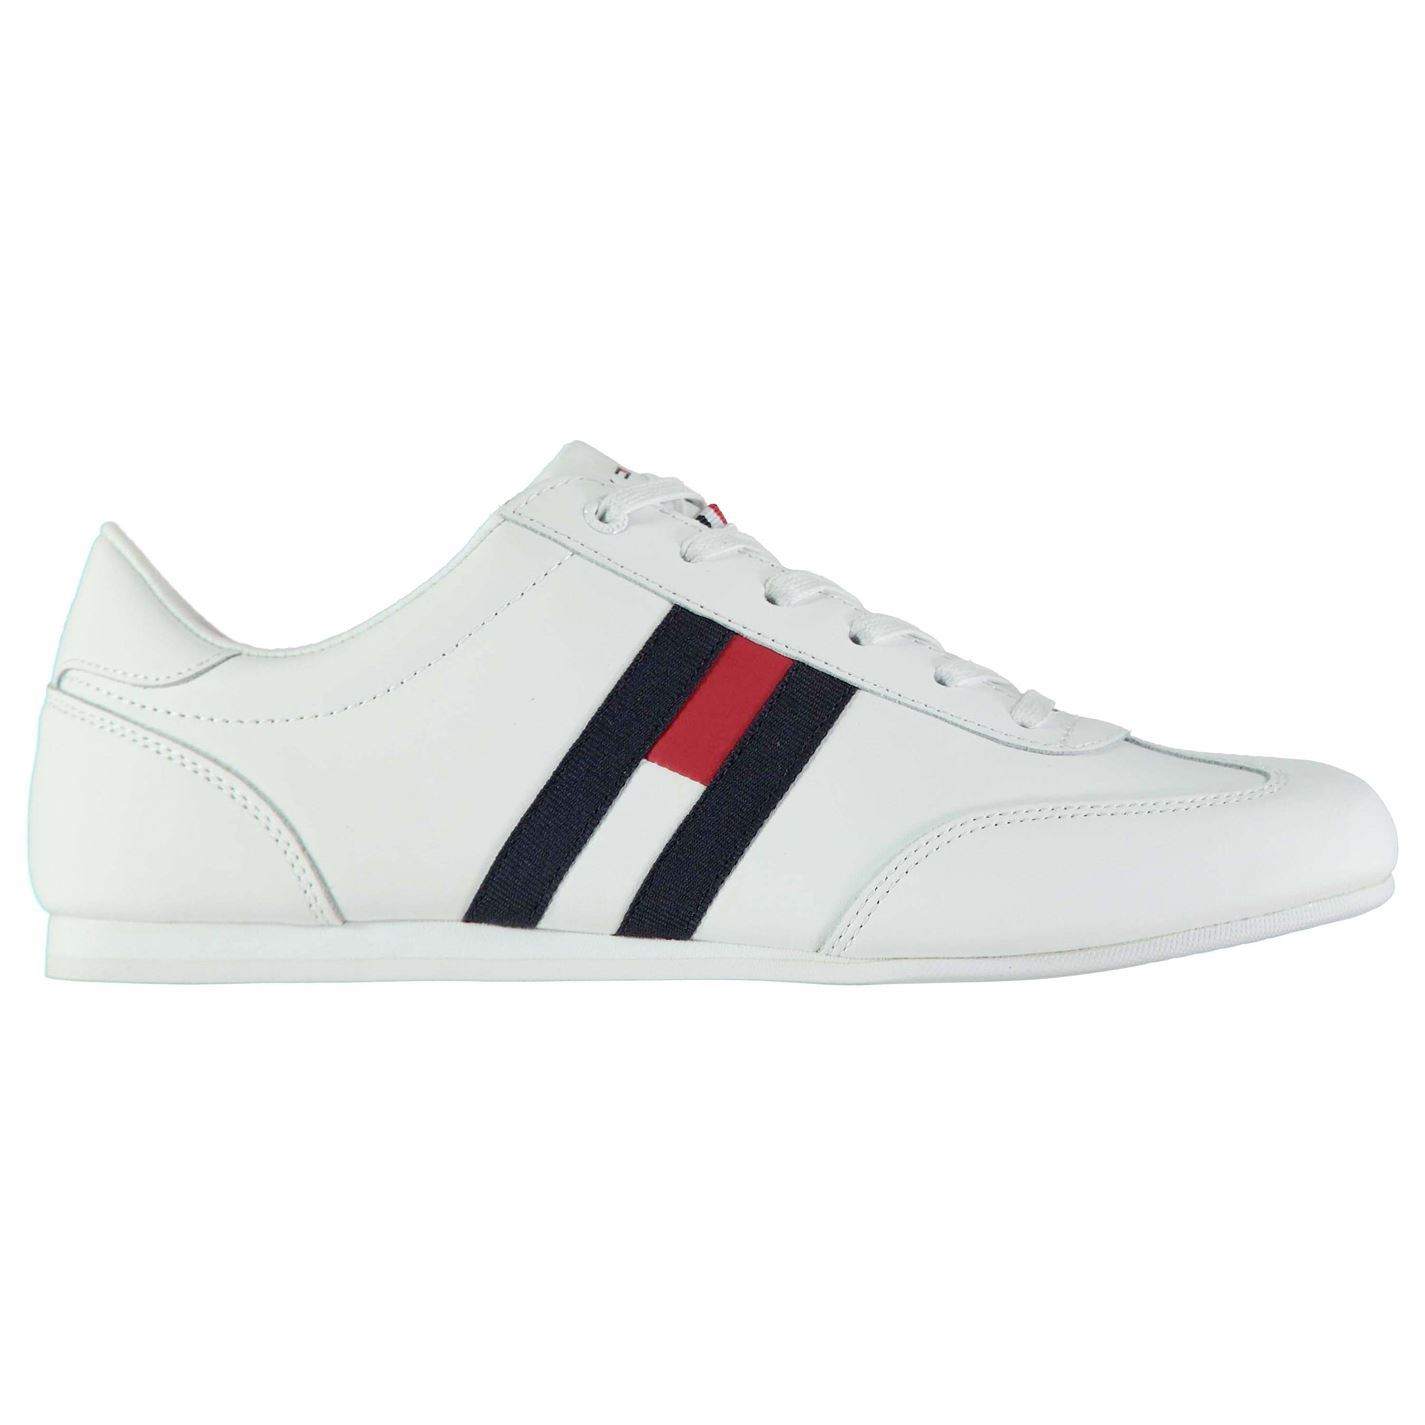 73d044f2648292 Details about Mens Tommy Hilfiger Rusc Leather Trainers Low Shoes Tonal  Stitching New